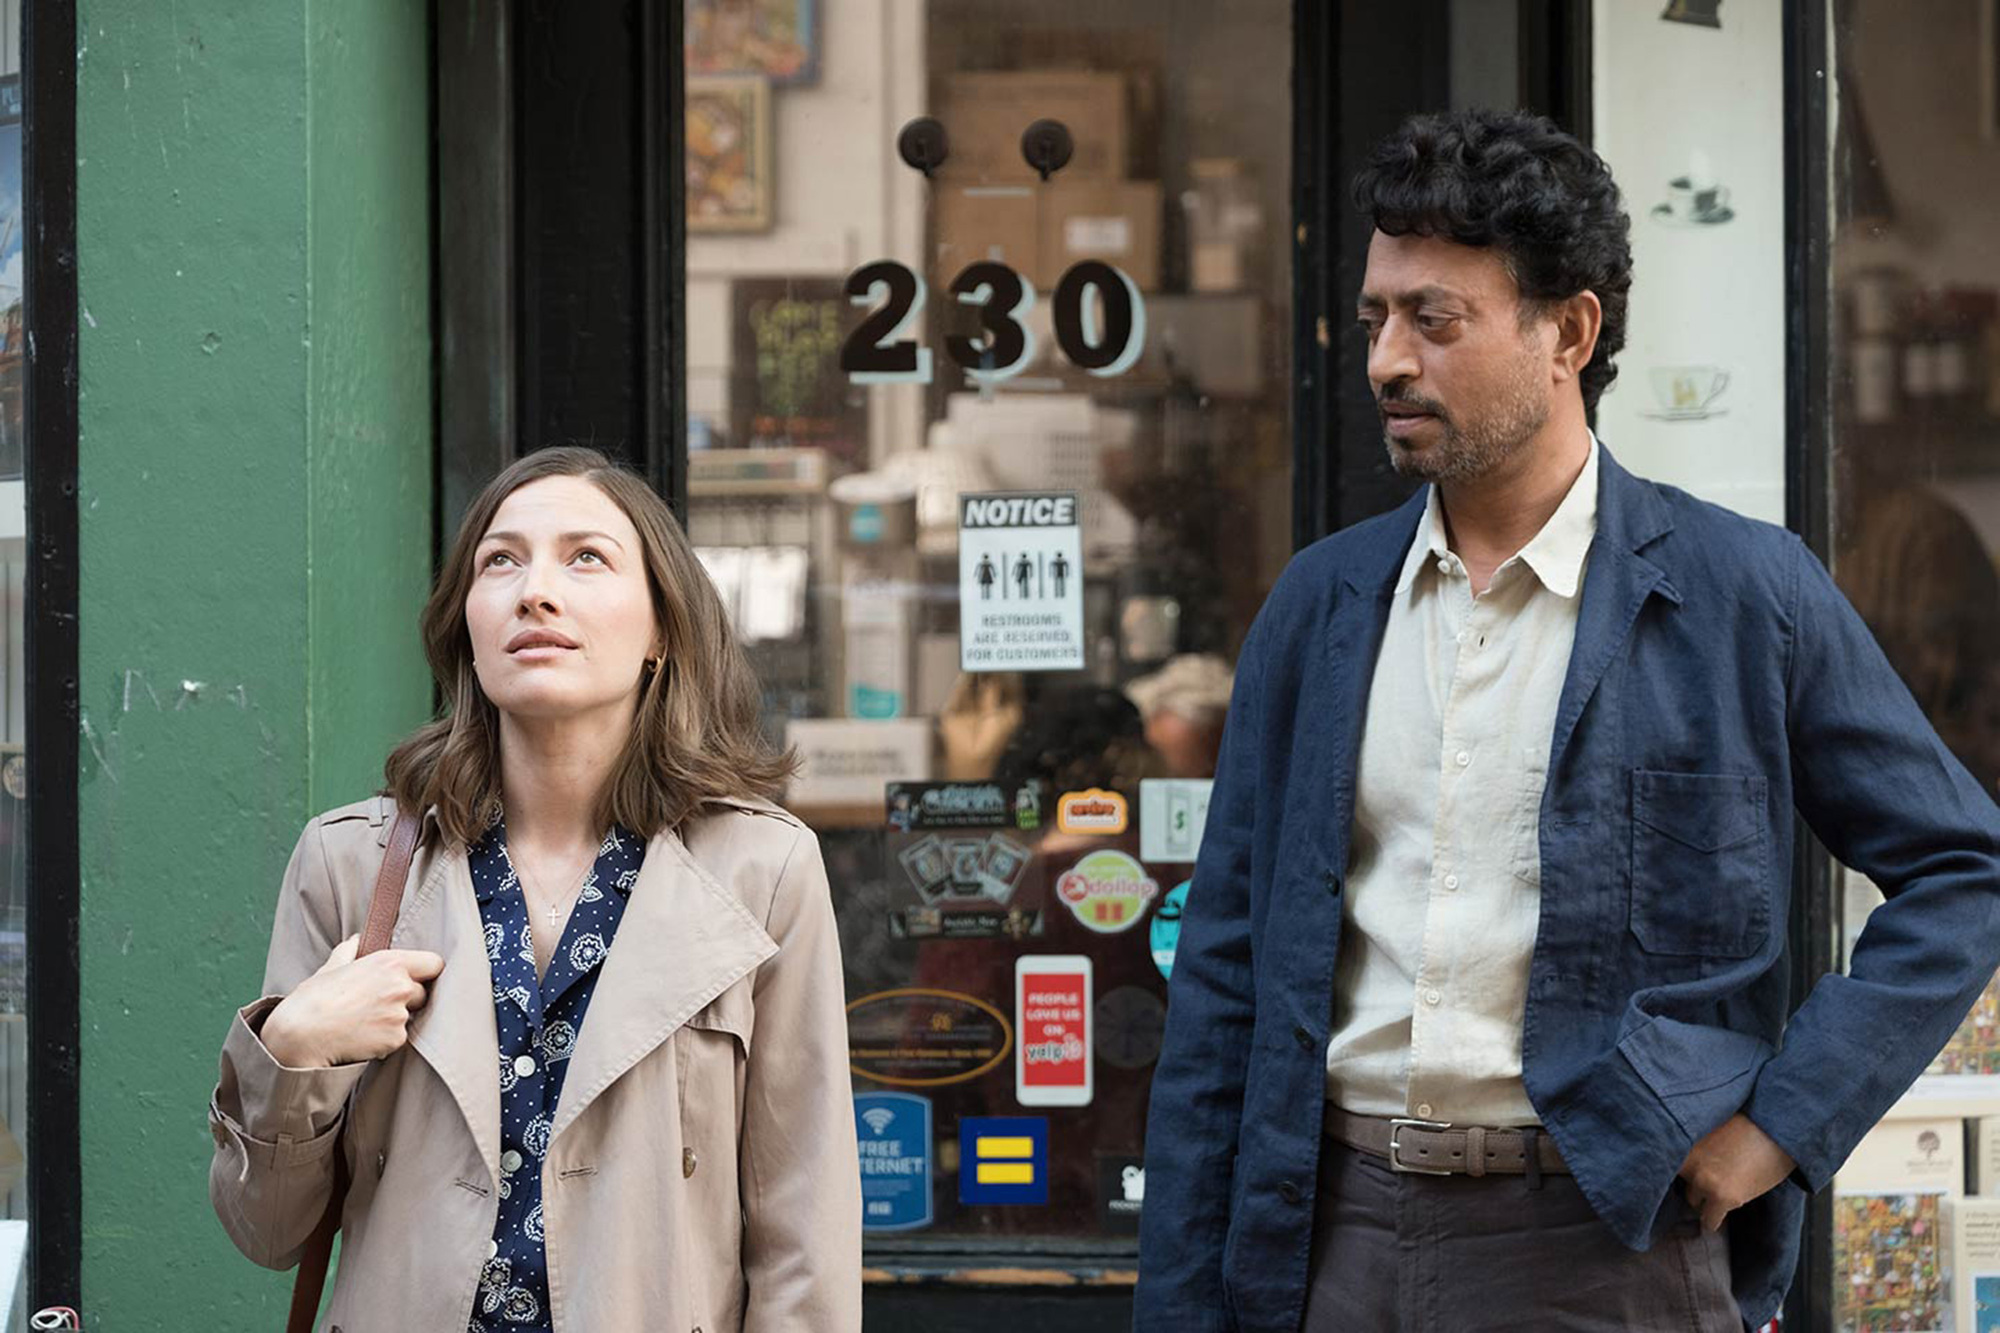 Kelly Macdonald and Irrfan Khan star as partners in jigsaw puzzle competitions in 'Puzzle.'